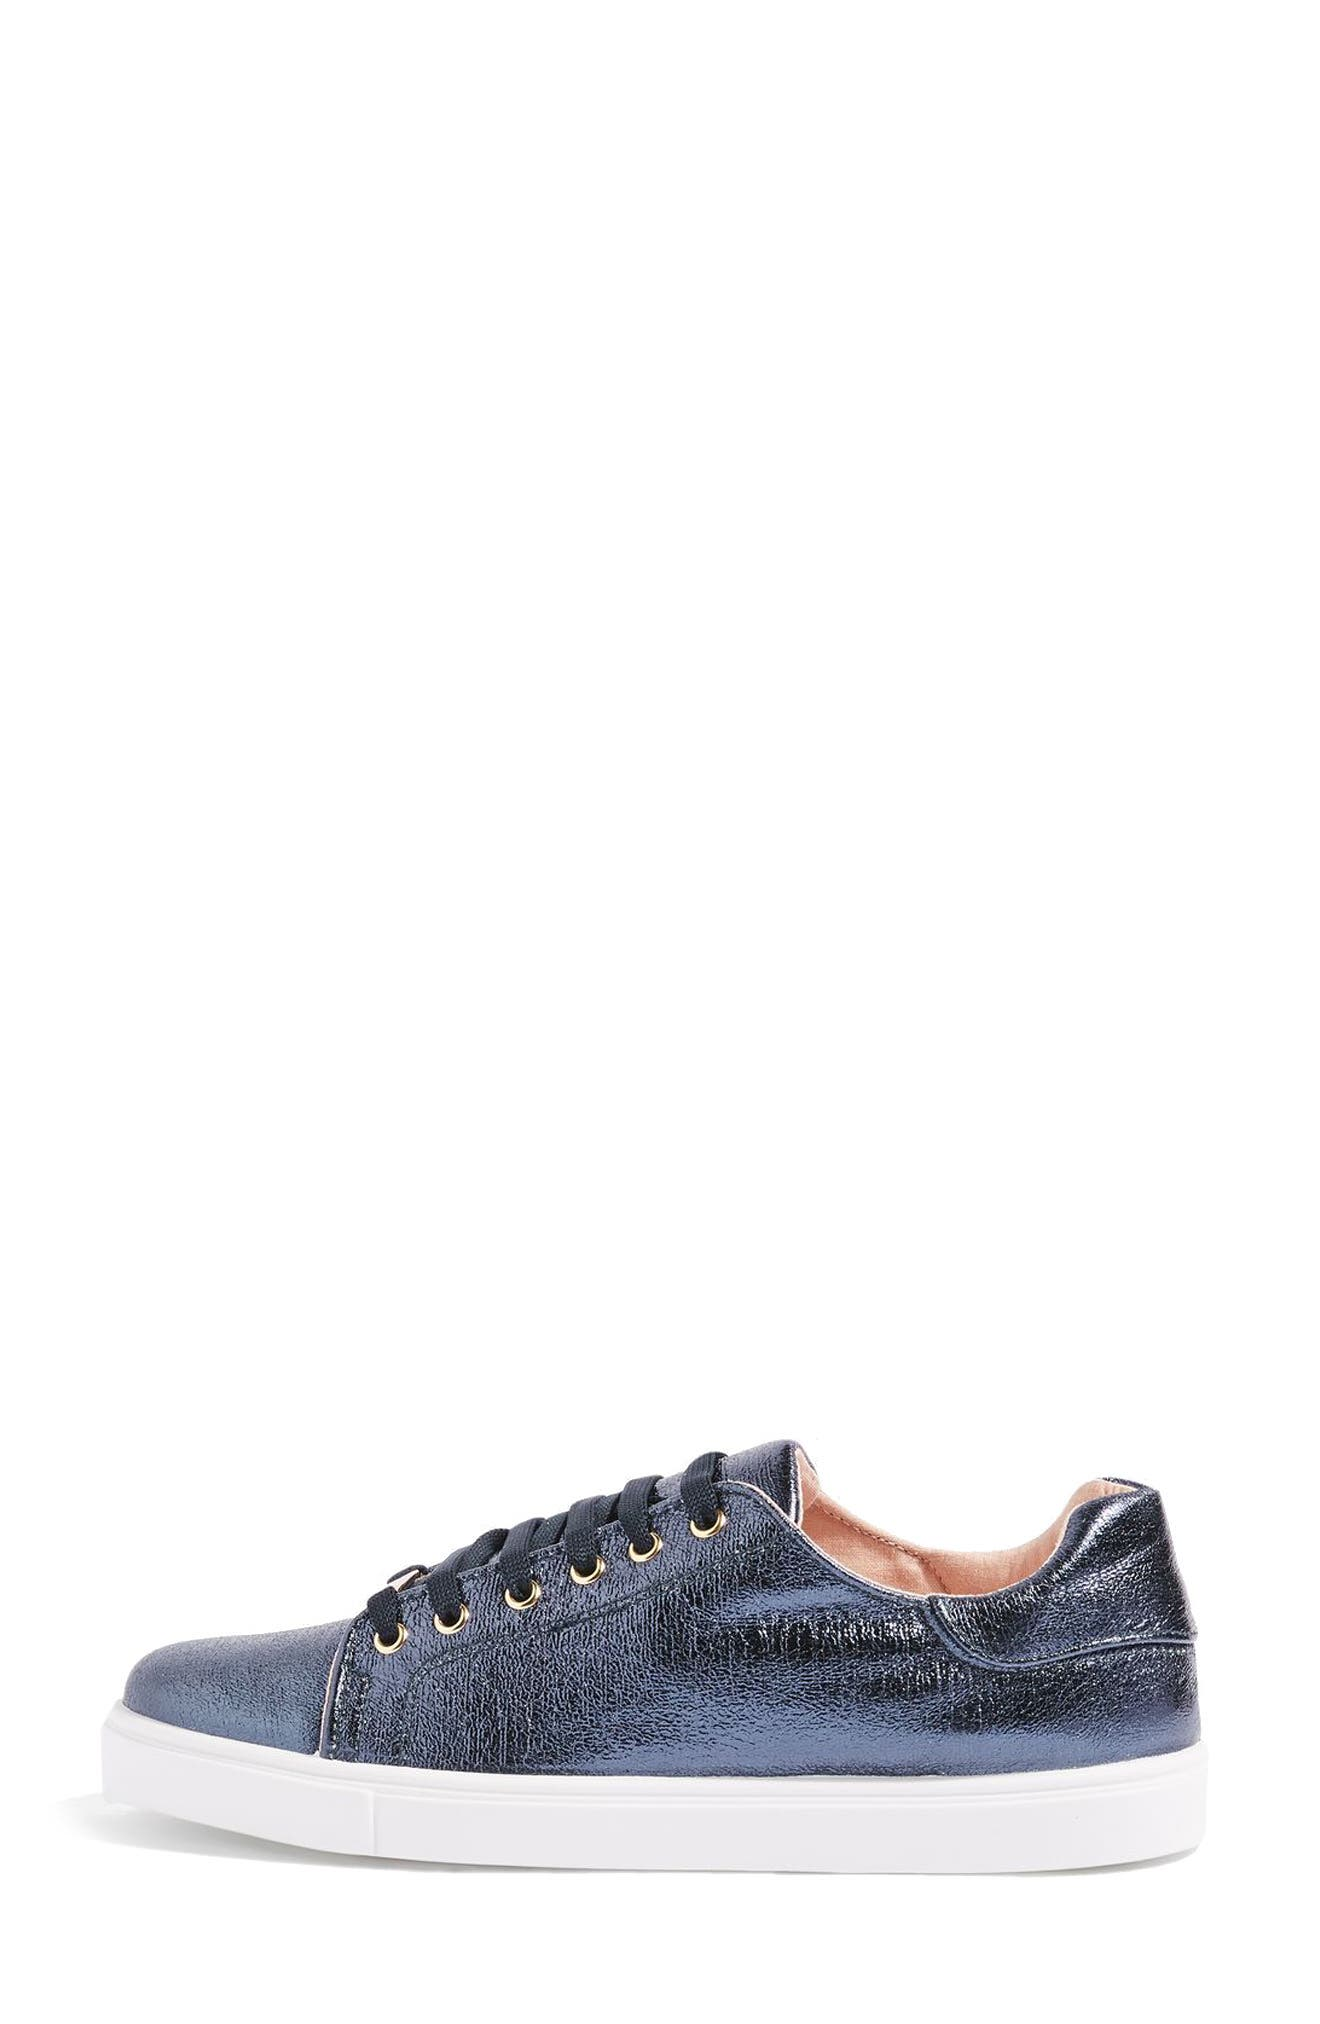 Alternate Image 2  - Topshop Cosmo Metallic Lace-Up Sneaker (Women)